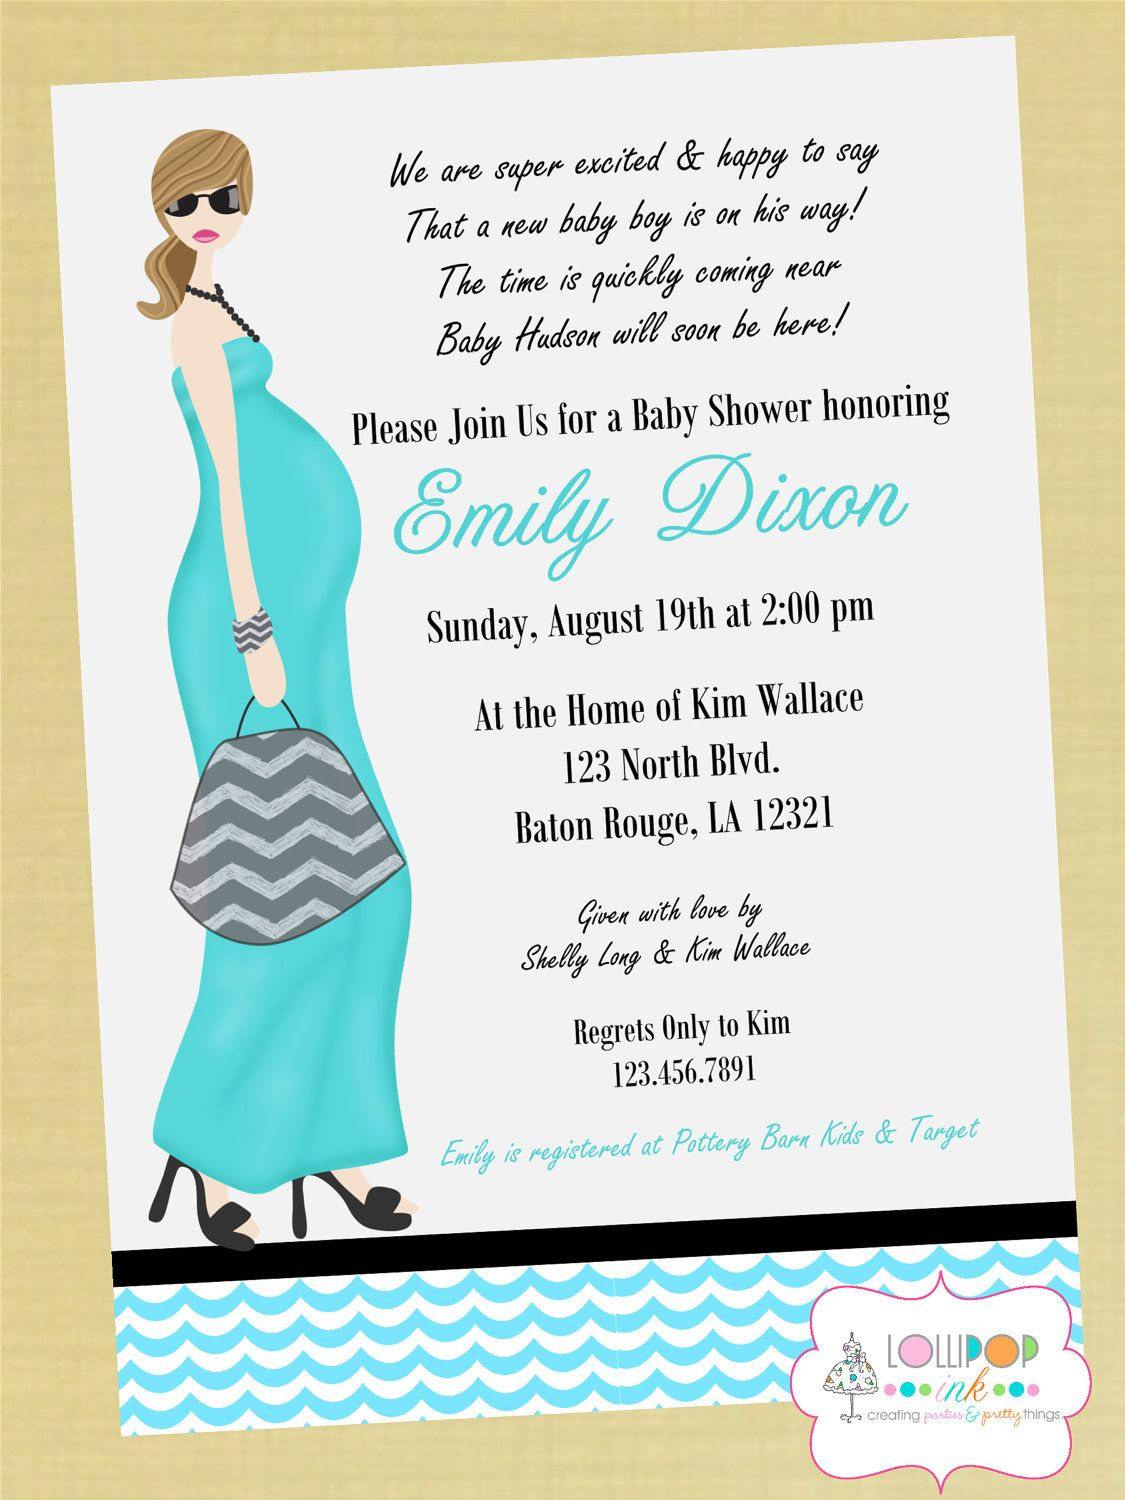 Fabulous Baby Boy Shower Quotes For Invitations | Baby-Shower-Invitation in New Baby Boy Baby Shower Invitations